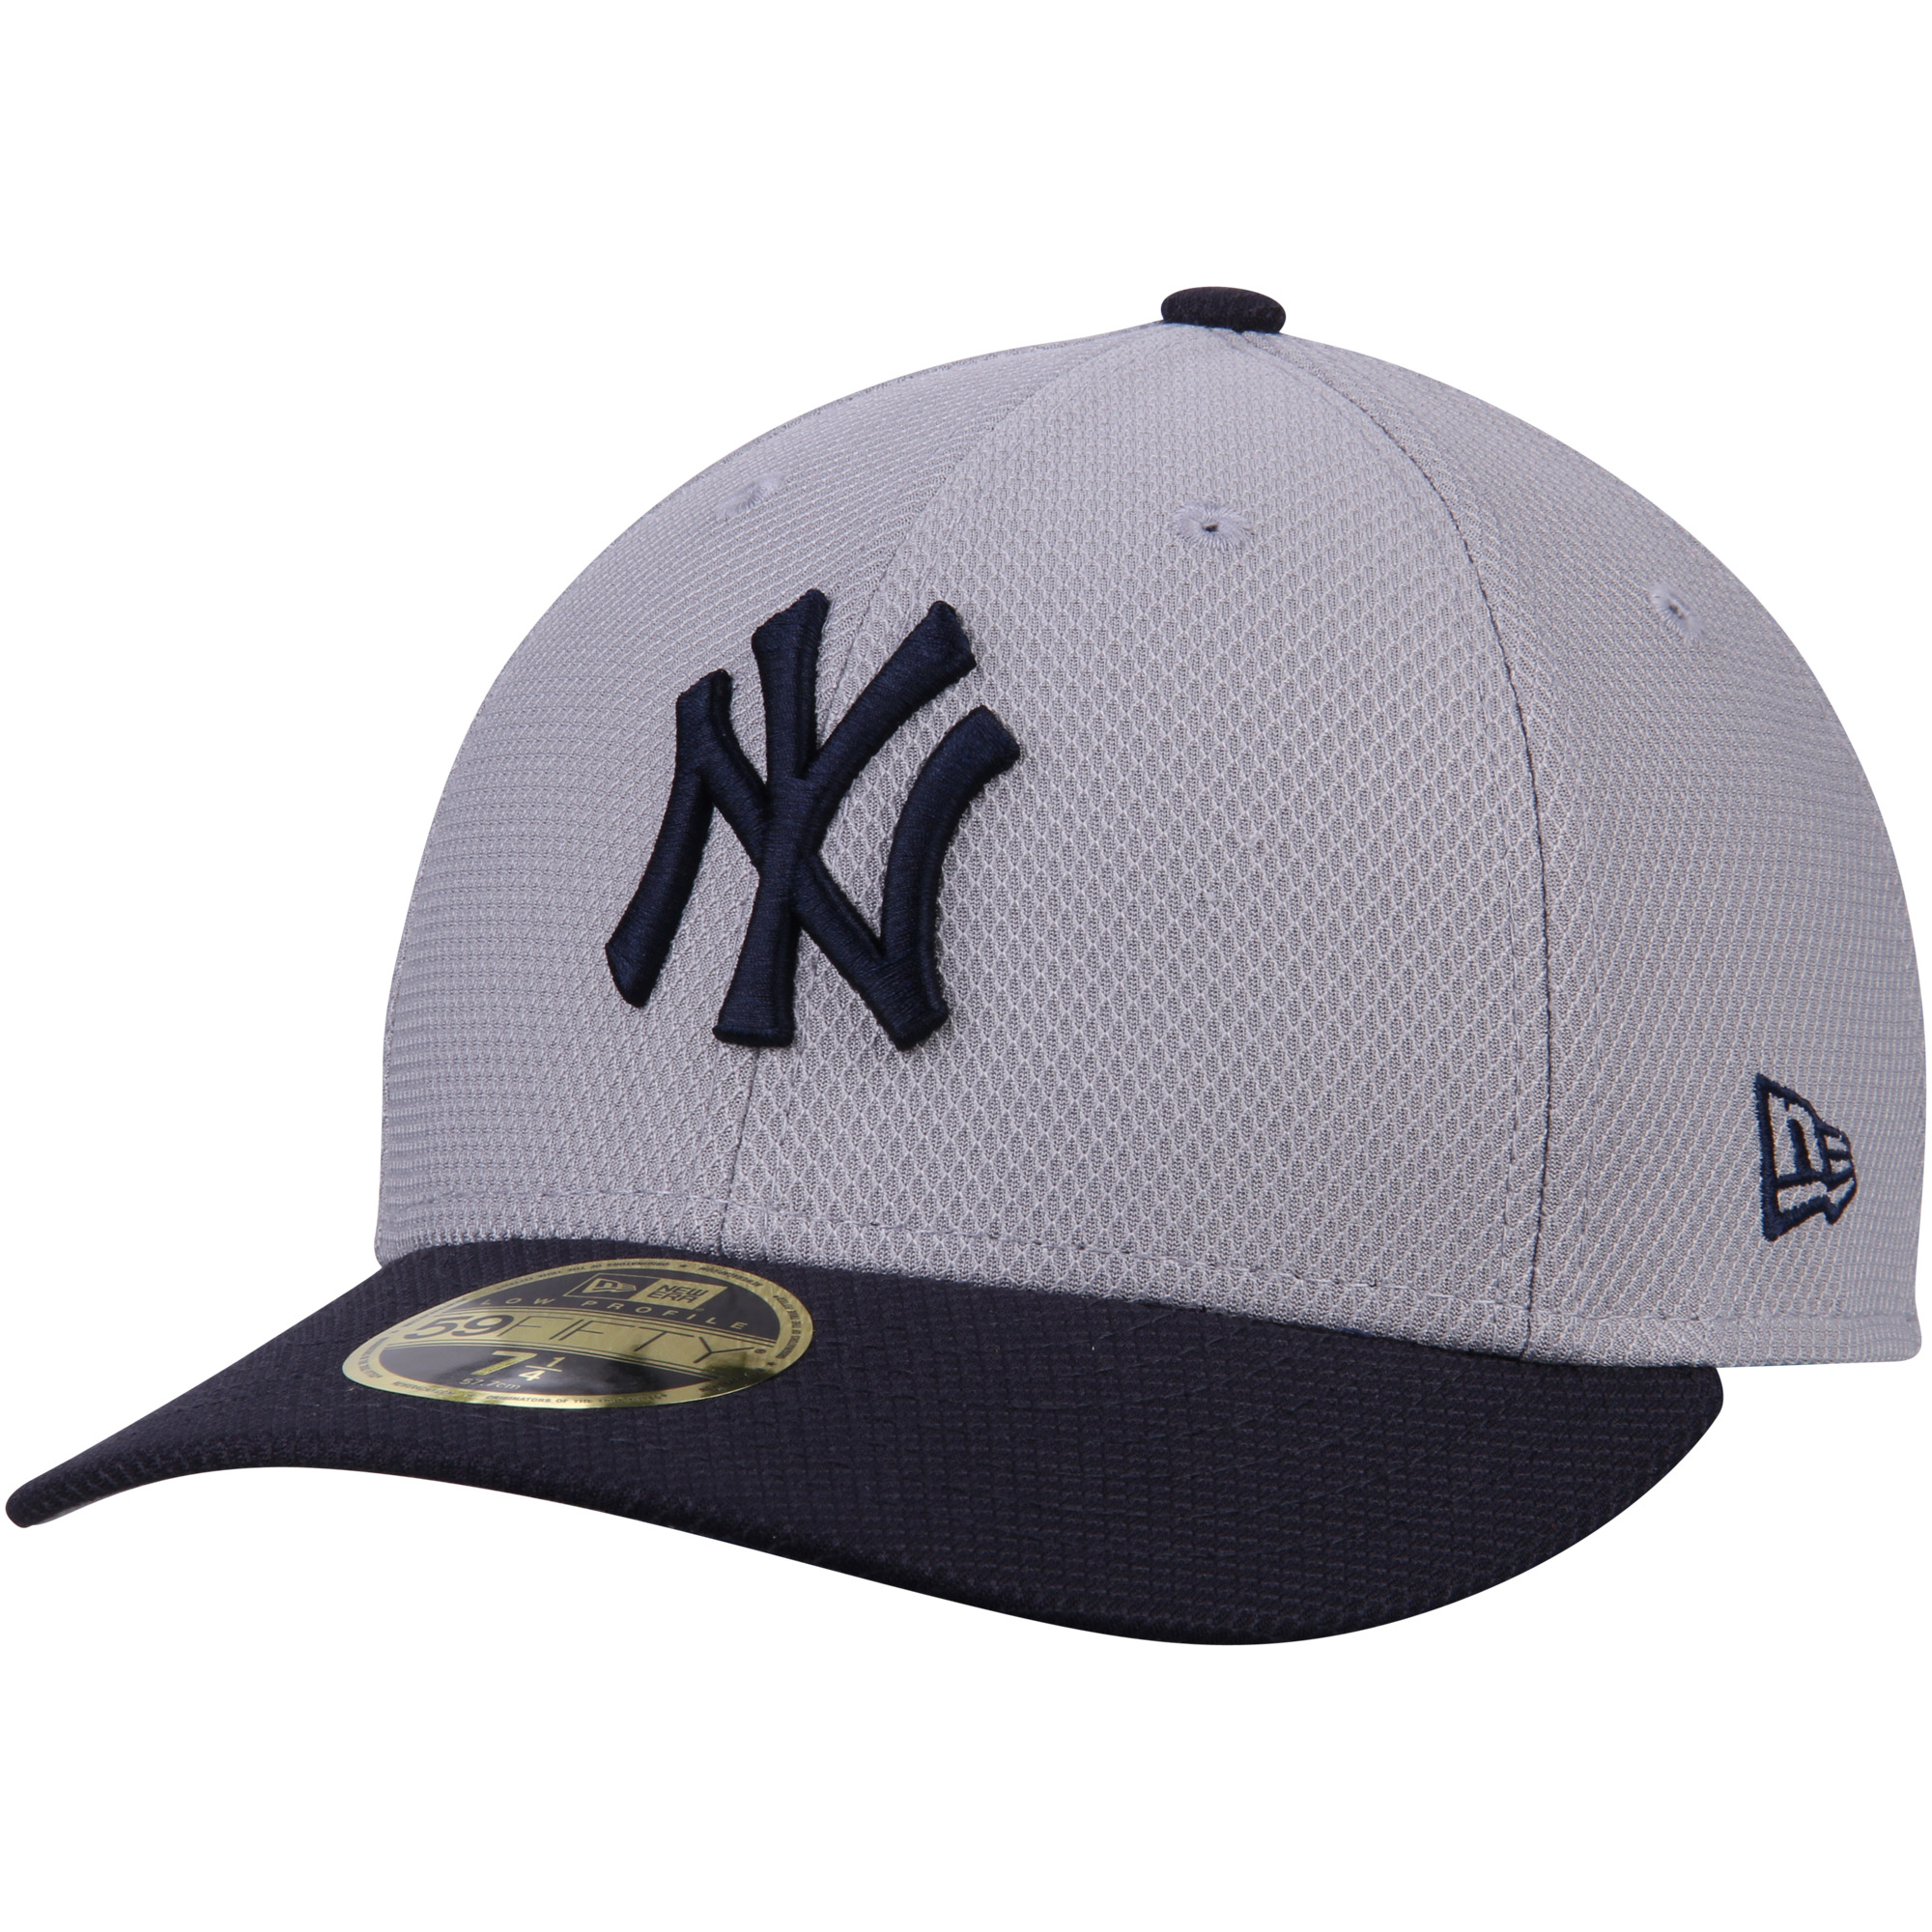 0bb3935dd3d New York Yankees New Era 2017 Spring Training Diamond Era Low Profile  59FIFTY Fitted Hat - Gray - Walmart.com